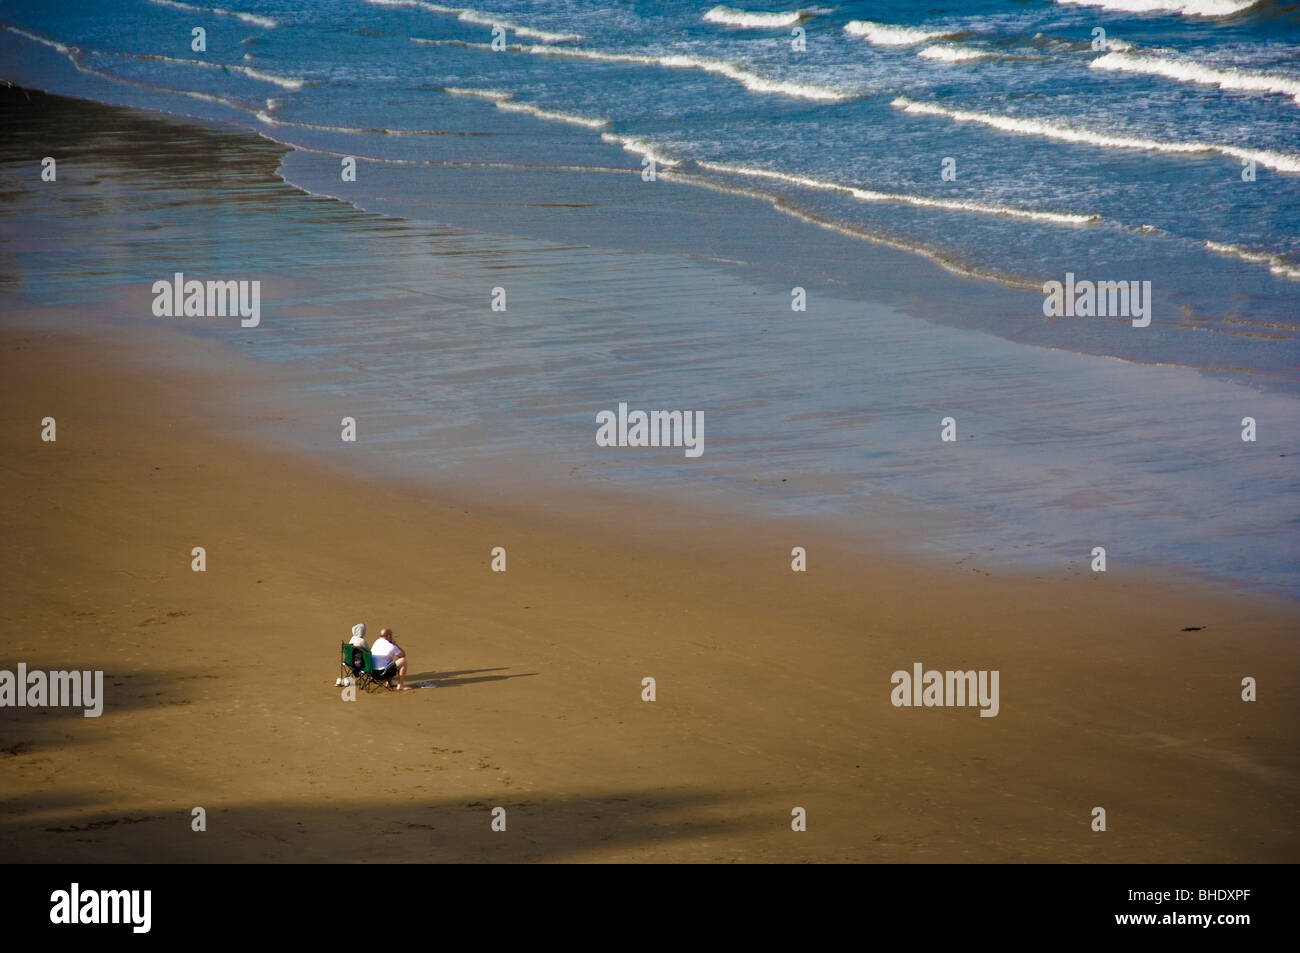 Couple on deserted beach looking out to sea - Stock Image